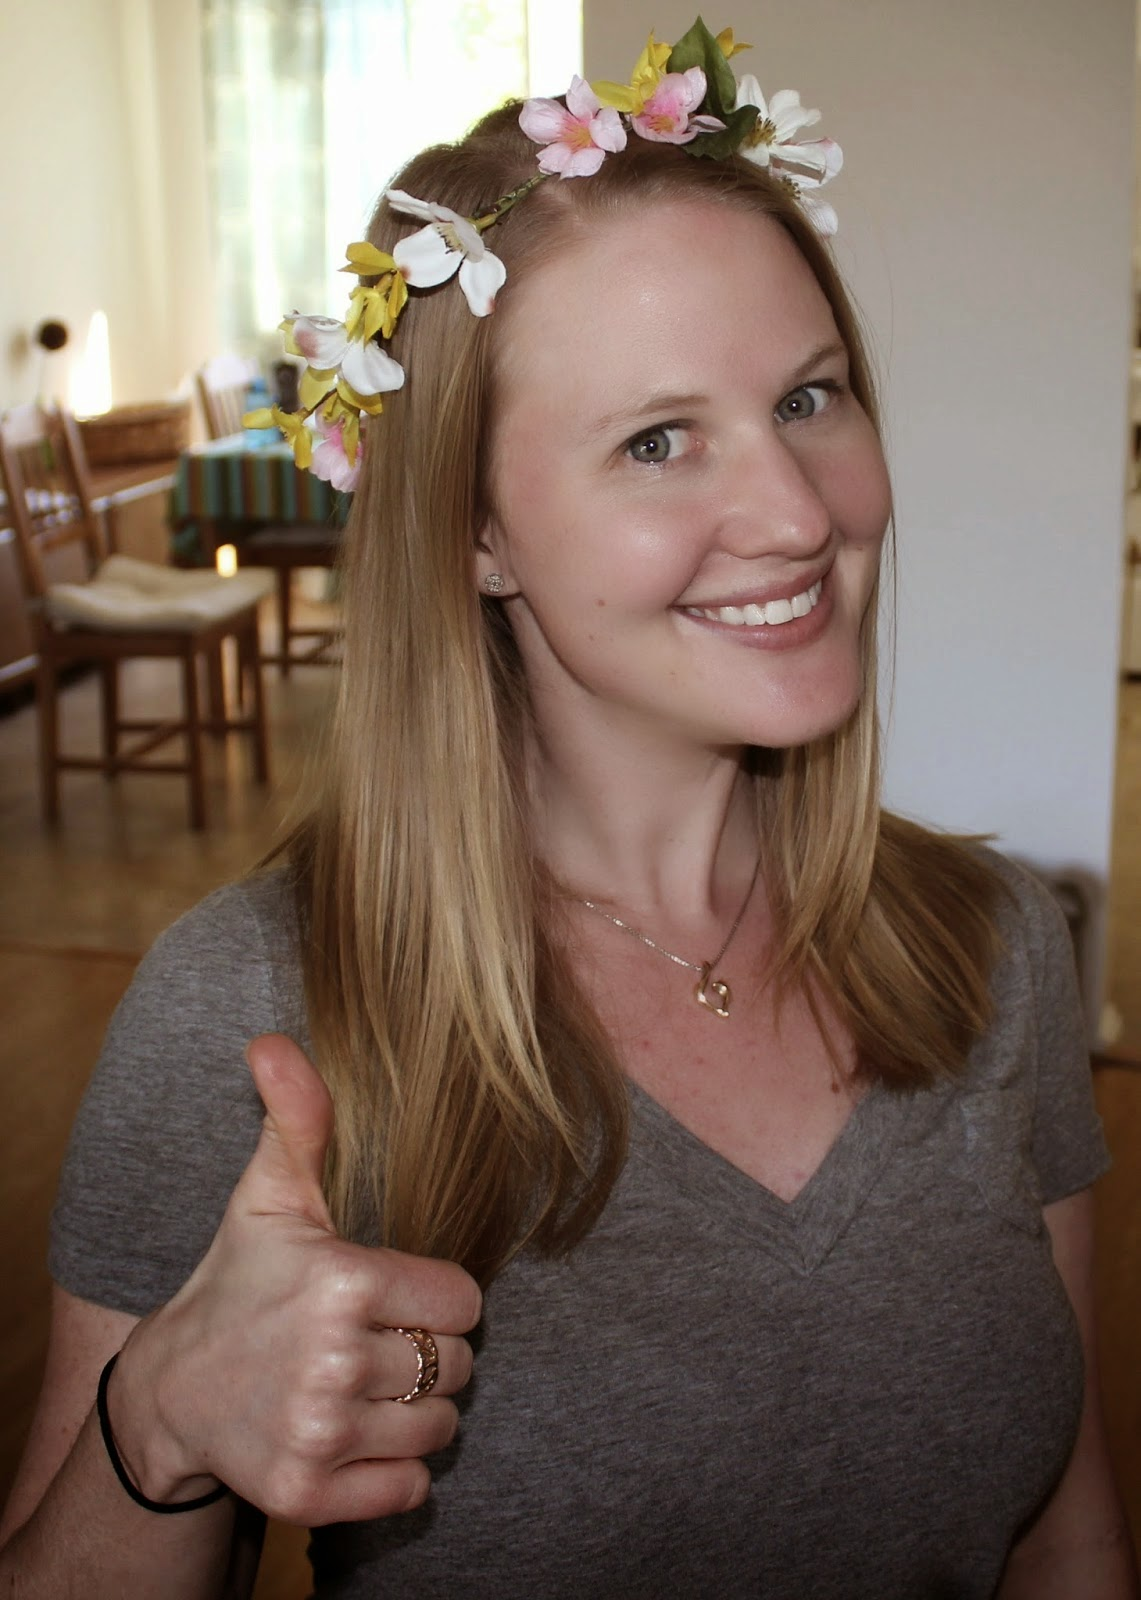 http://the-pickled-herring.blogspot.com/2014/04/midsommar-flower-crown-tutorial.html